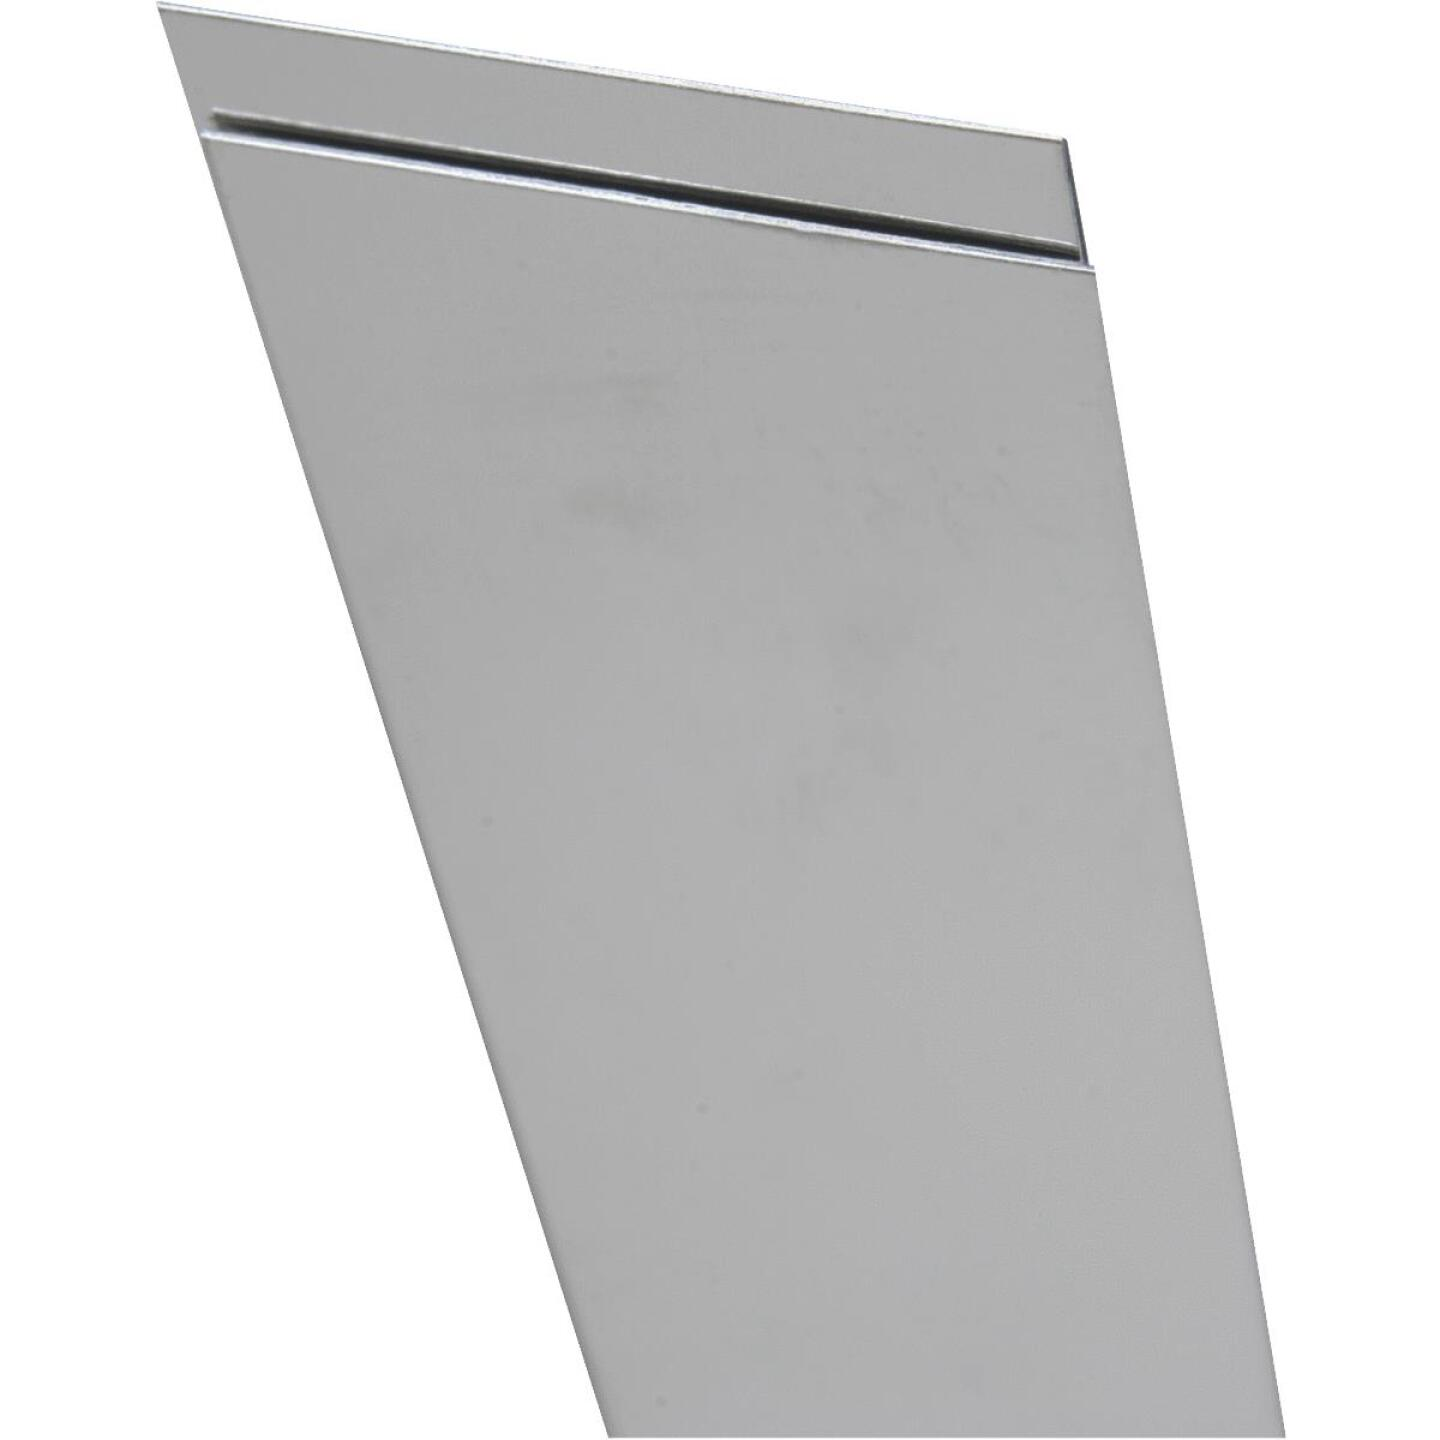 K&S 6 In. x 12 In. x .018 In. Stainless Steel Sheet Stock Image 1